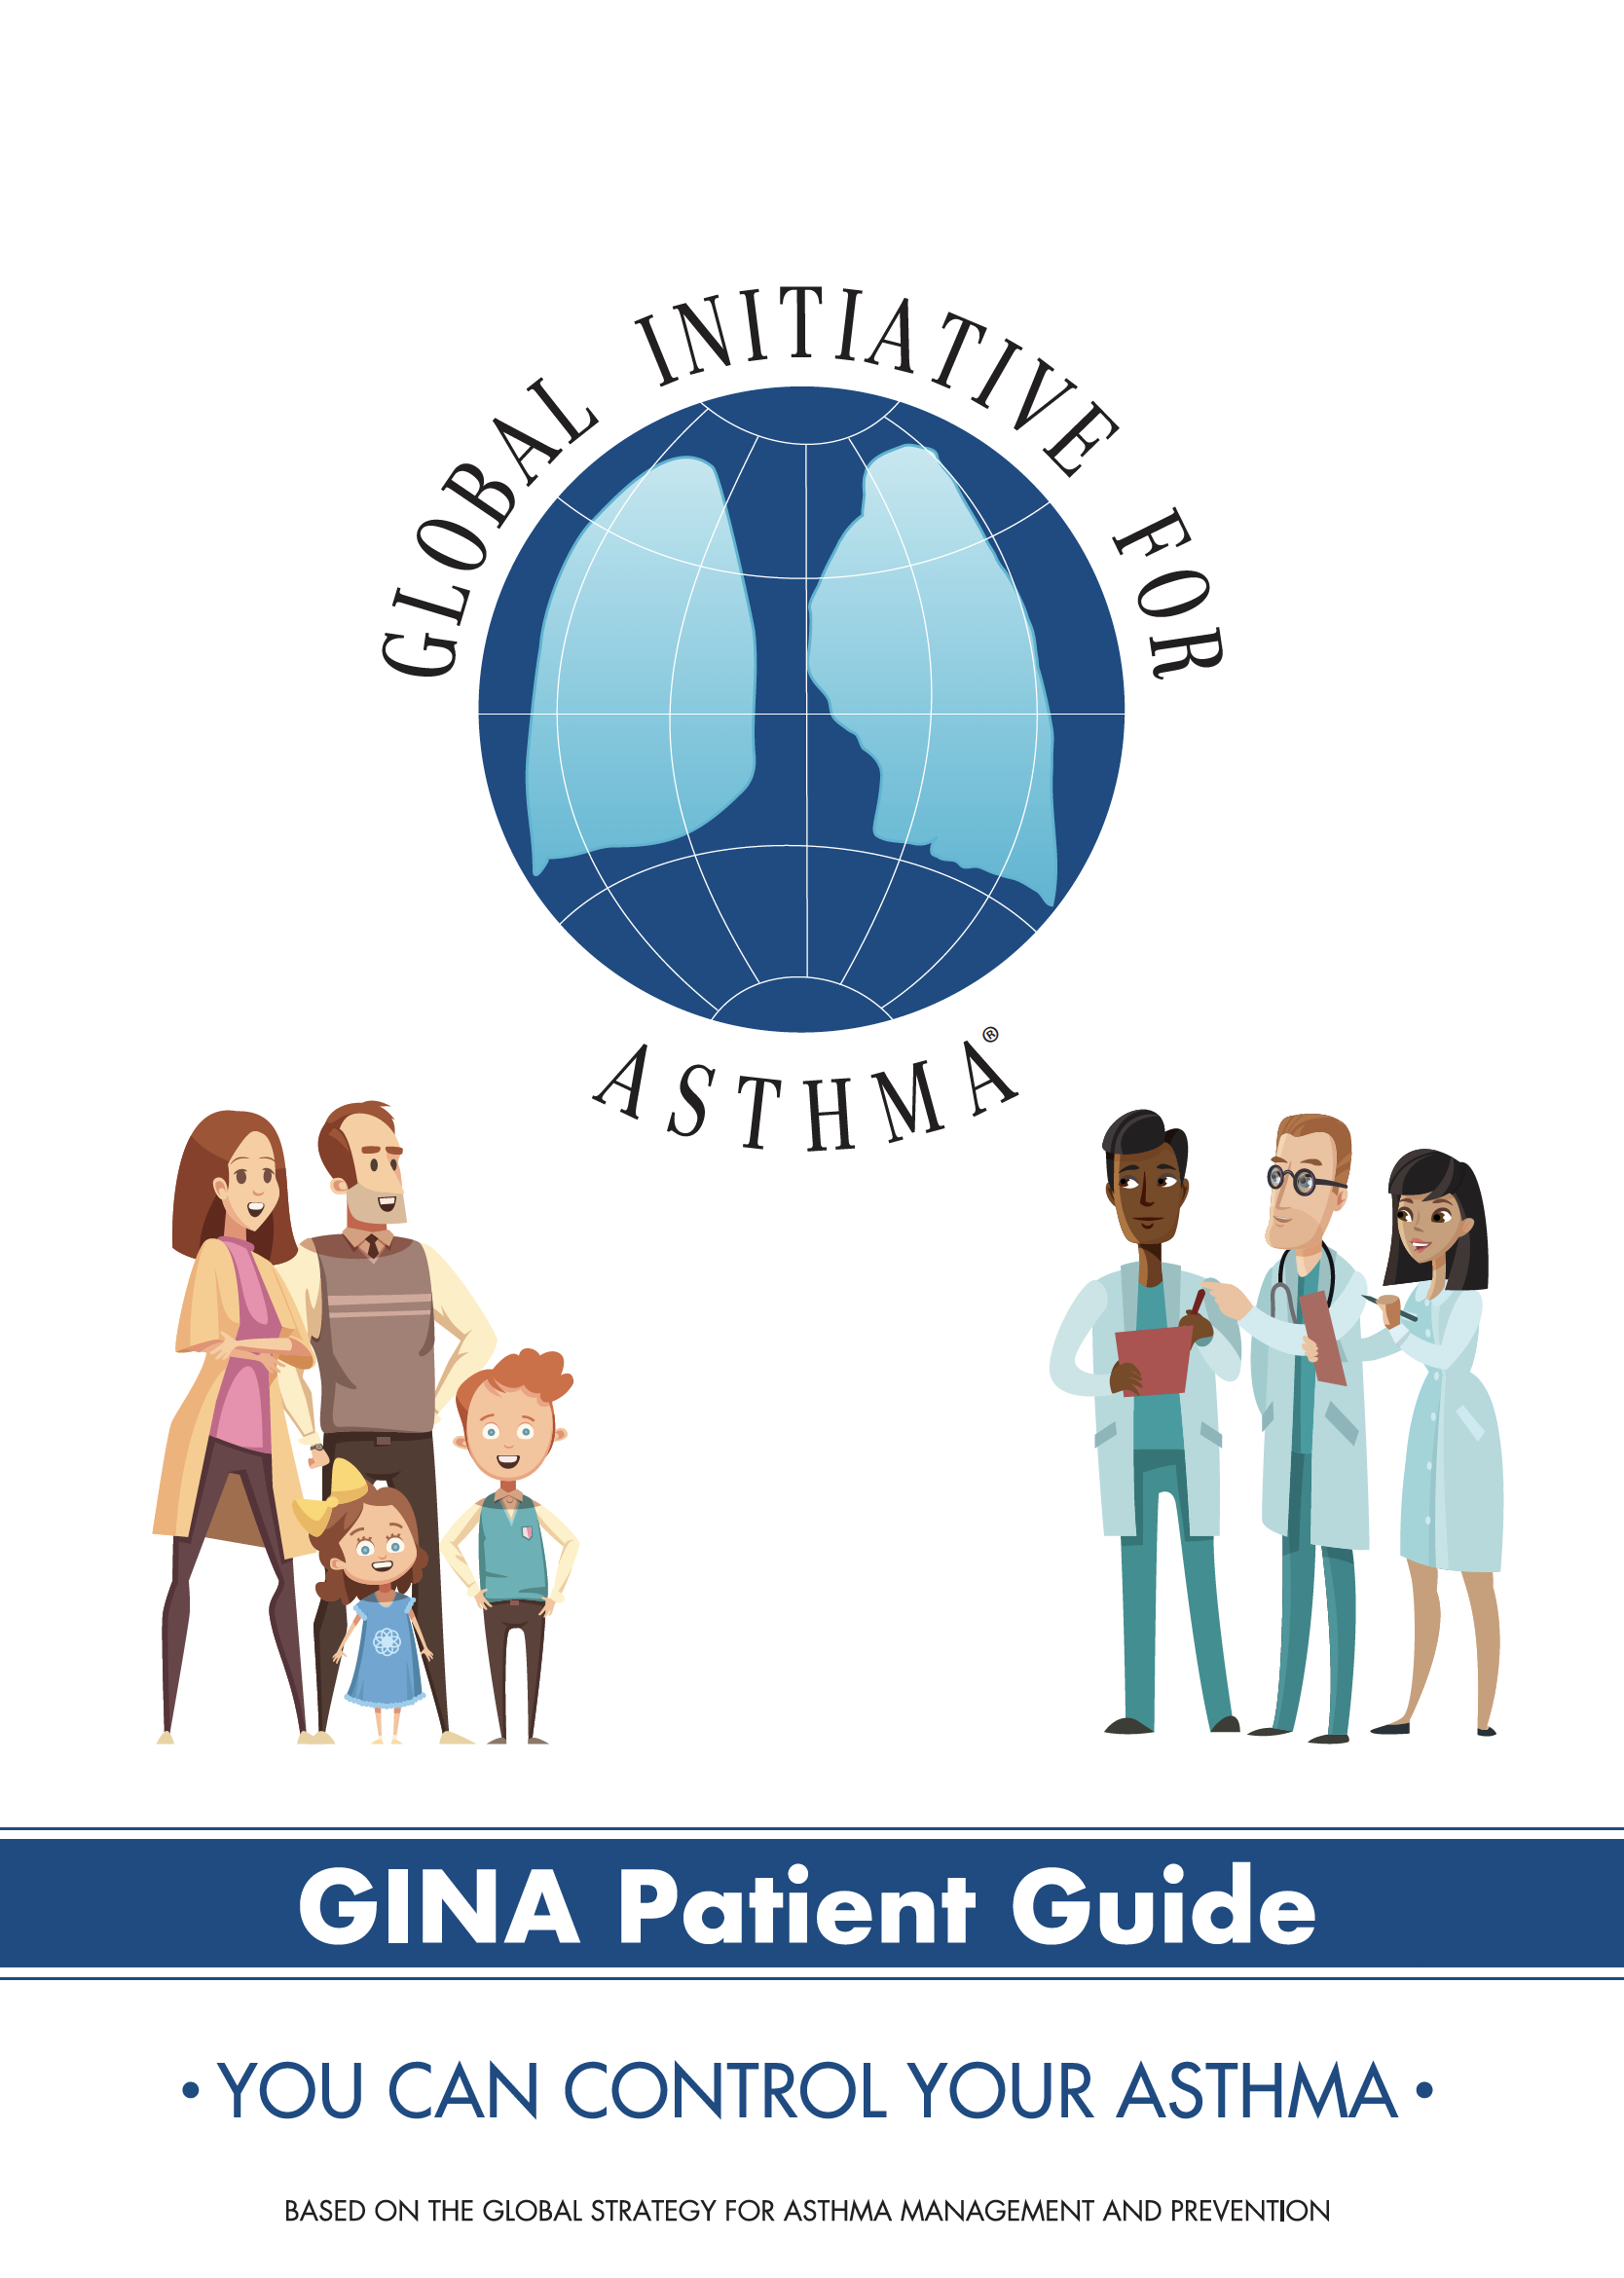 GINA Patient Guide for Asthma: You can control your asthma